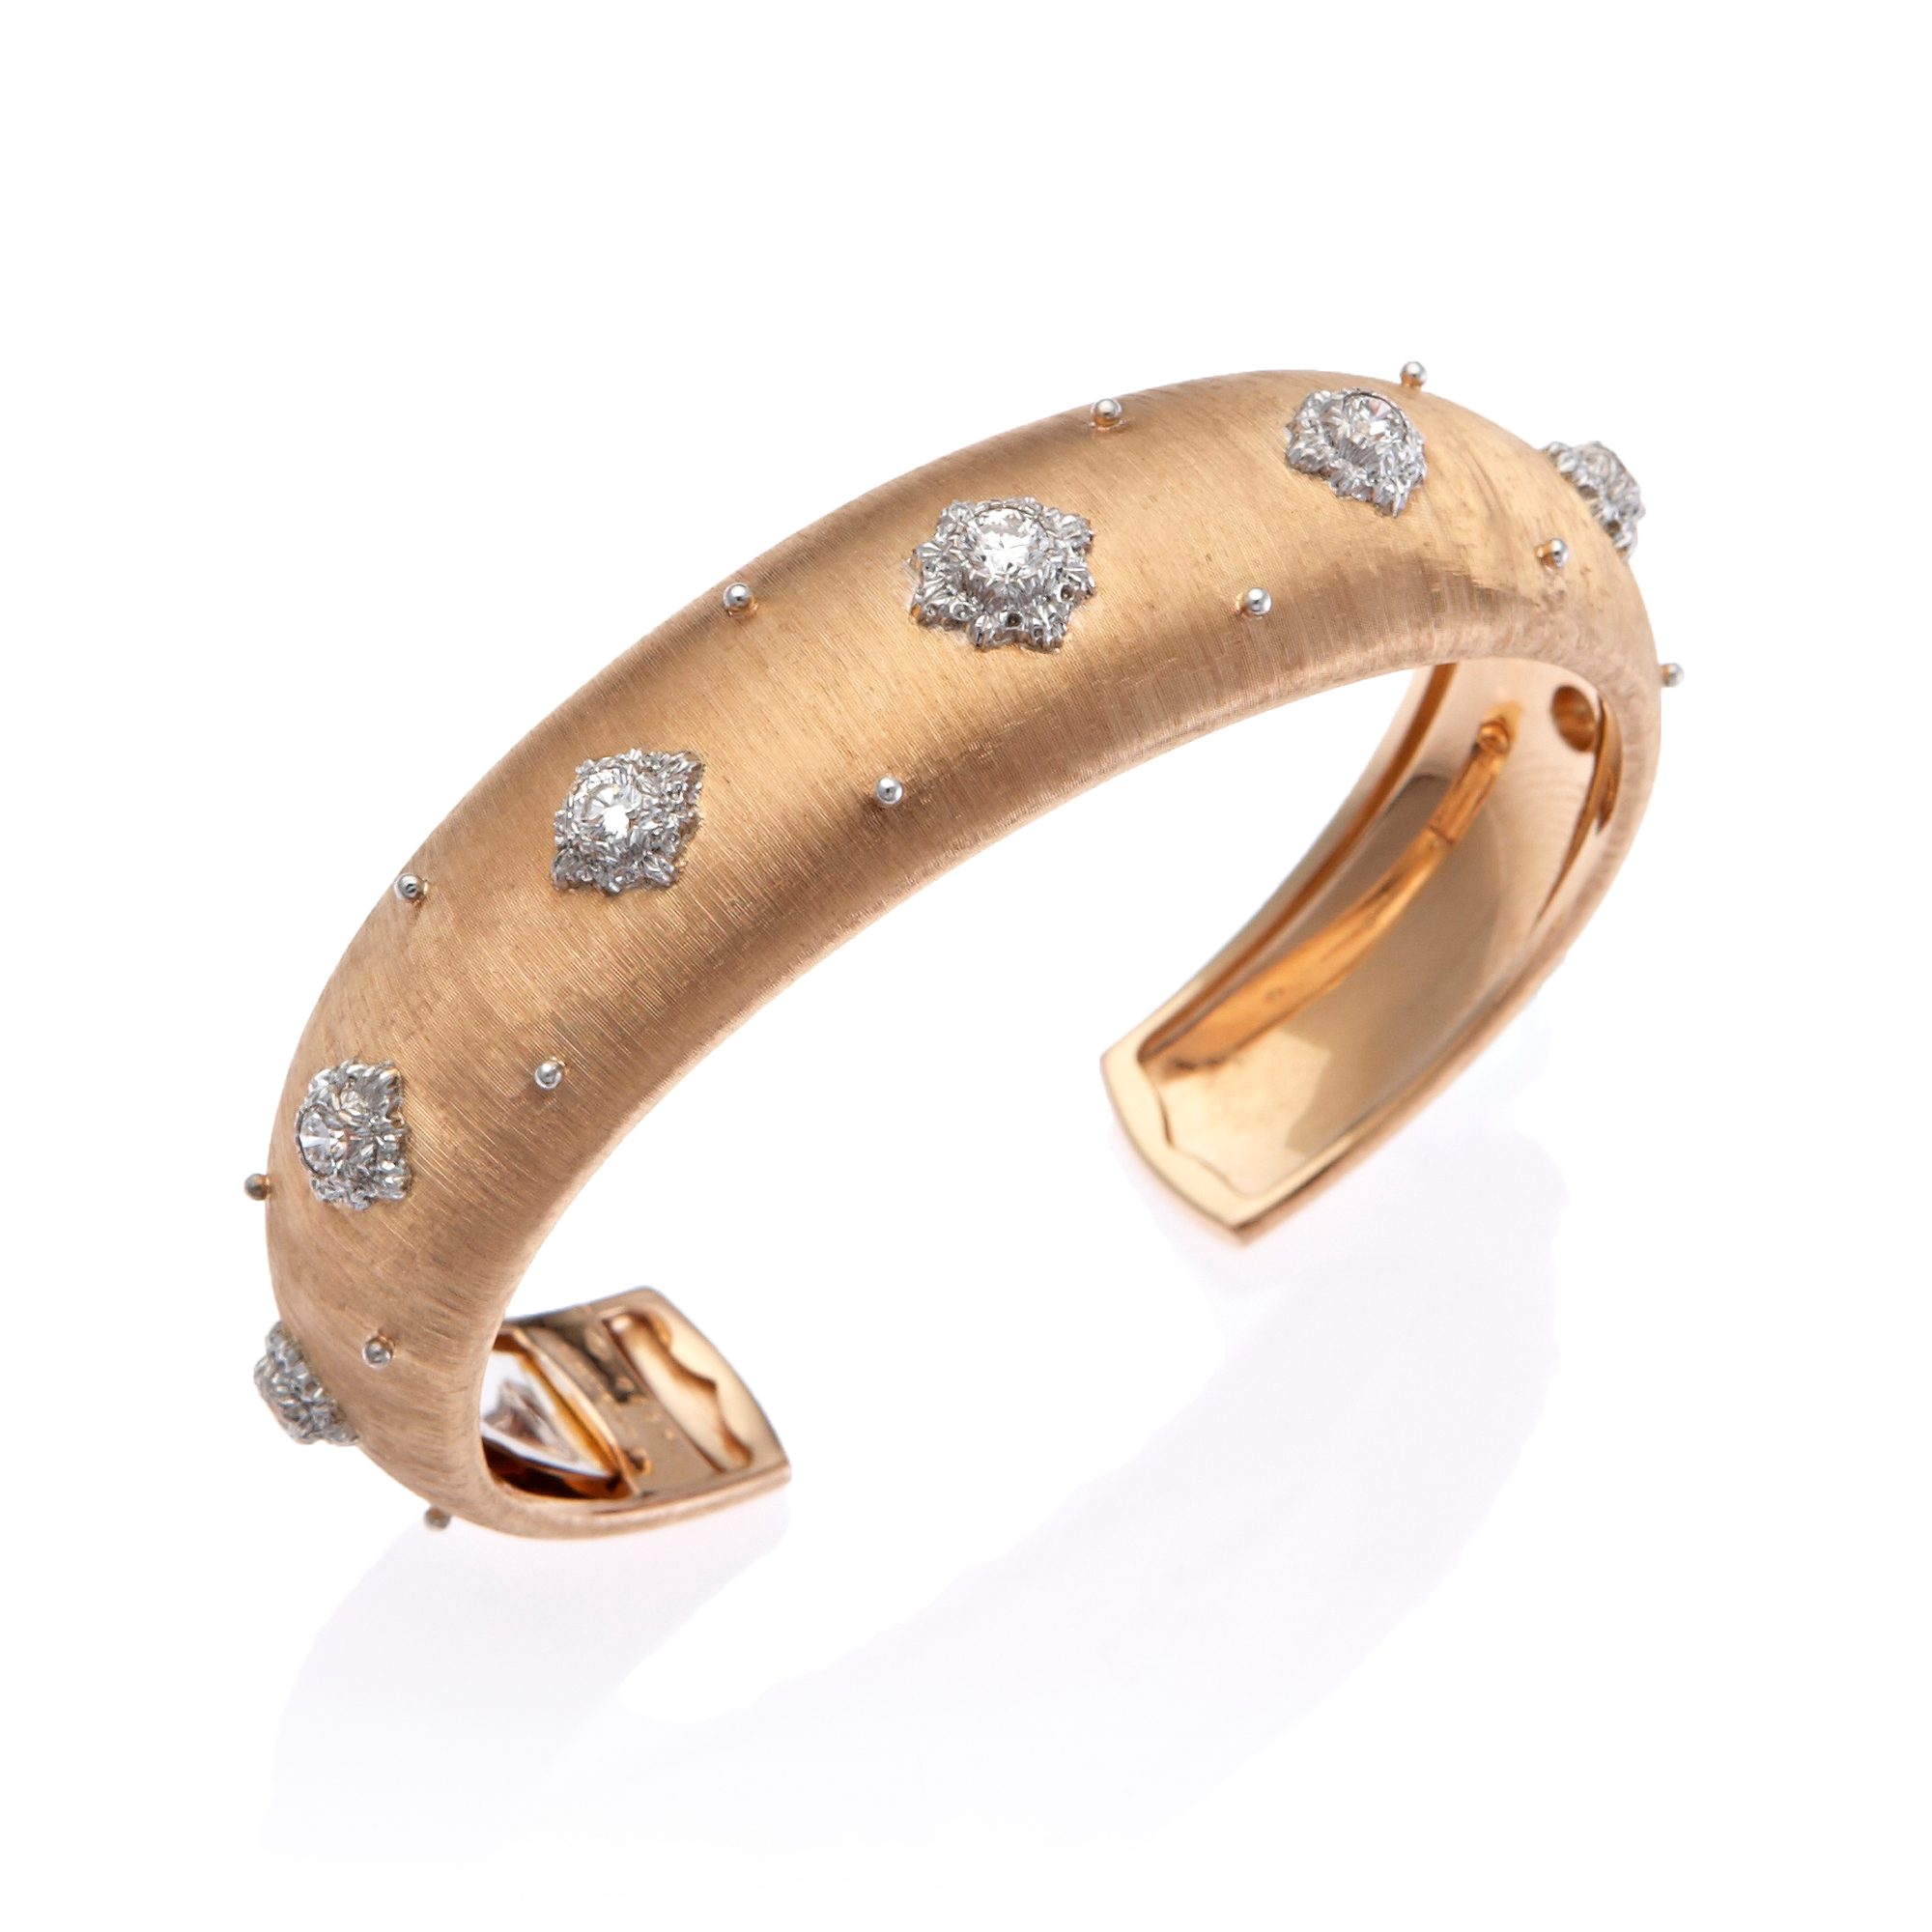 Buccellati Macri Rose Gold & Diamond Cuff